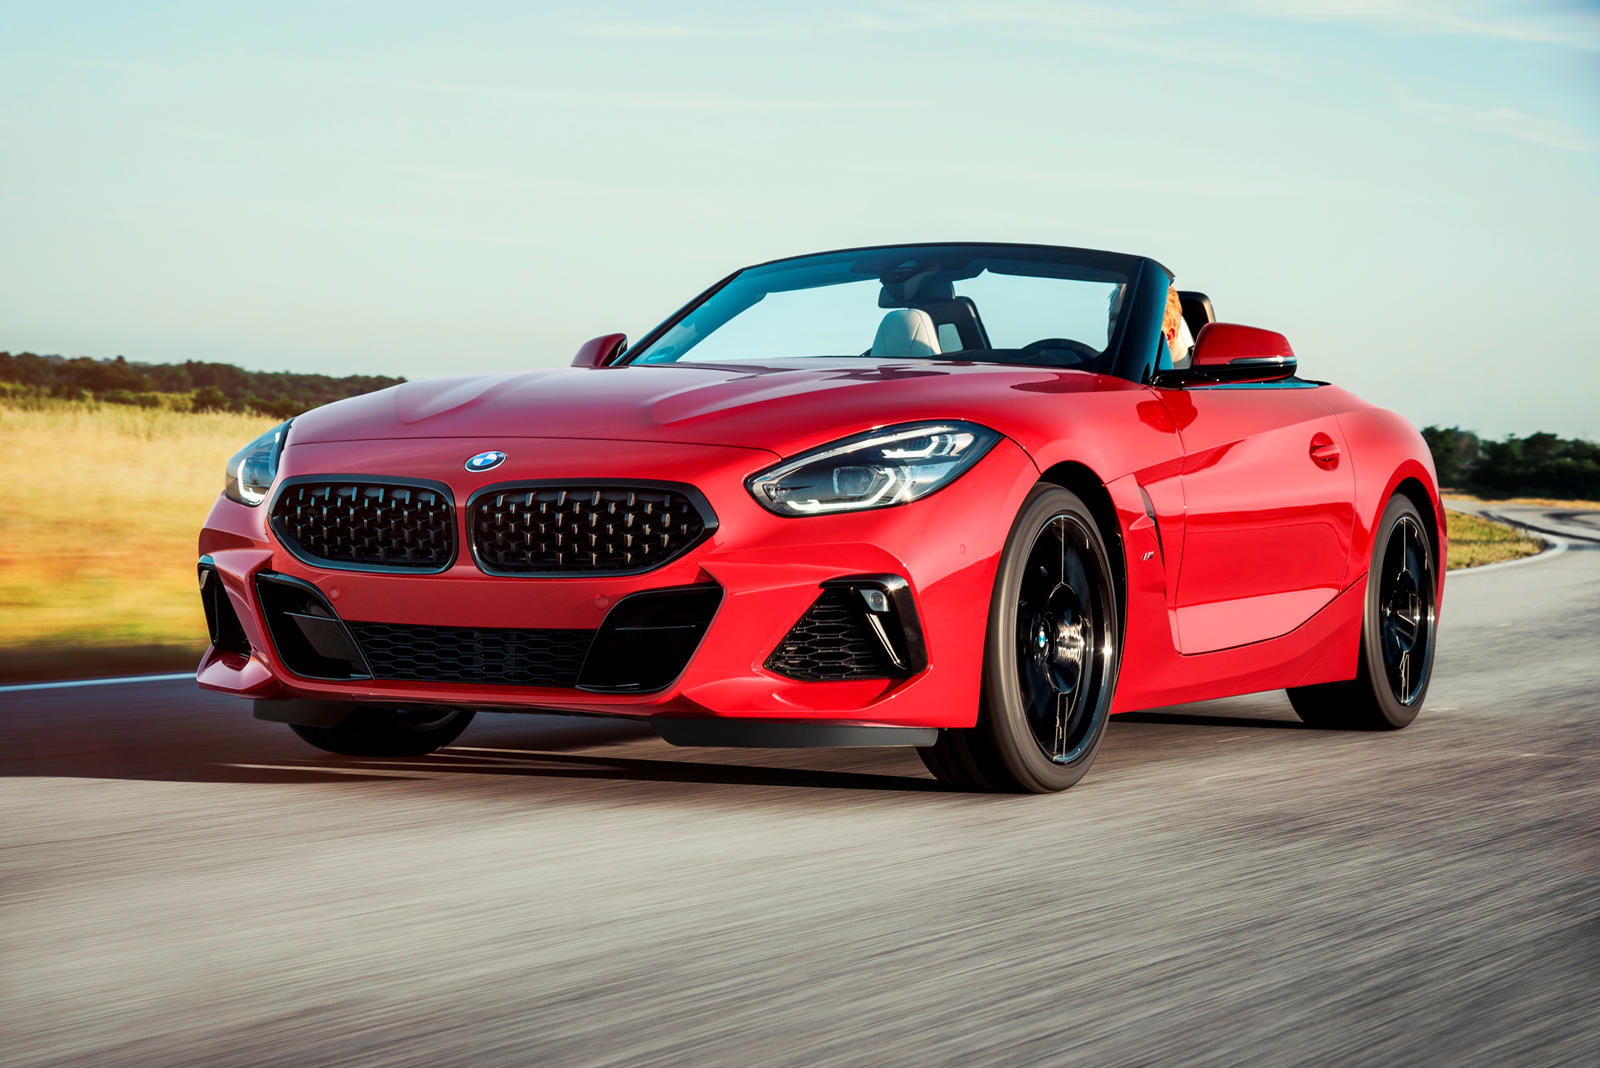 2019 Bmw Z4 Now Has A Faster 0 60 Mph Sprint Time Carbuzz